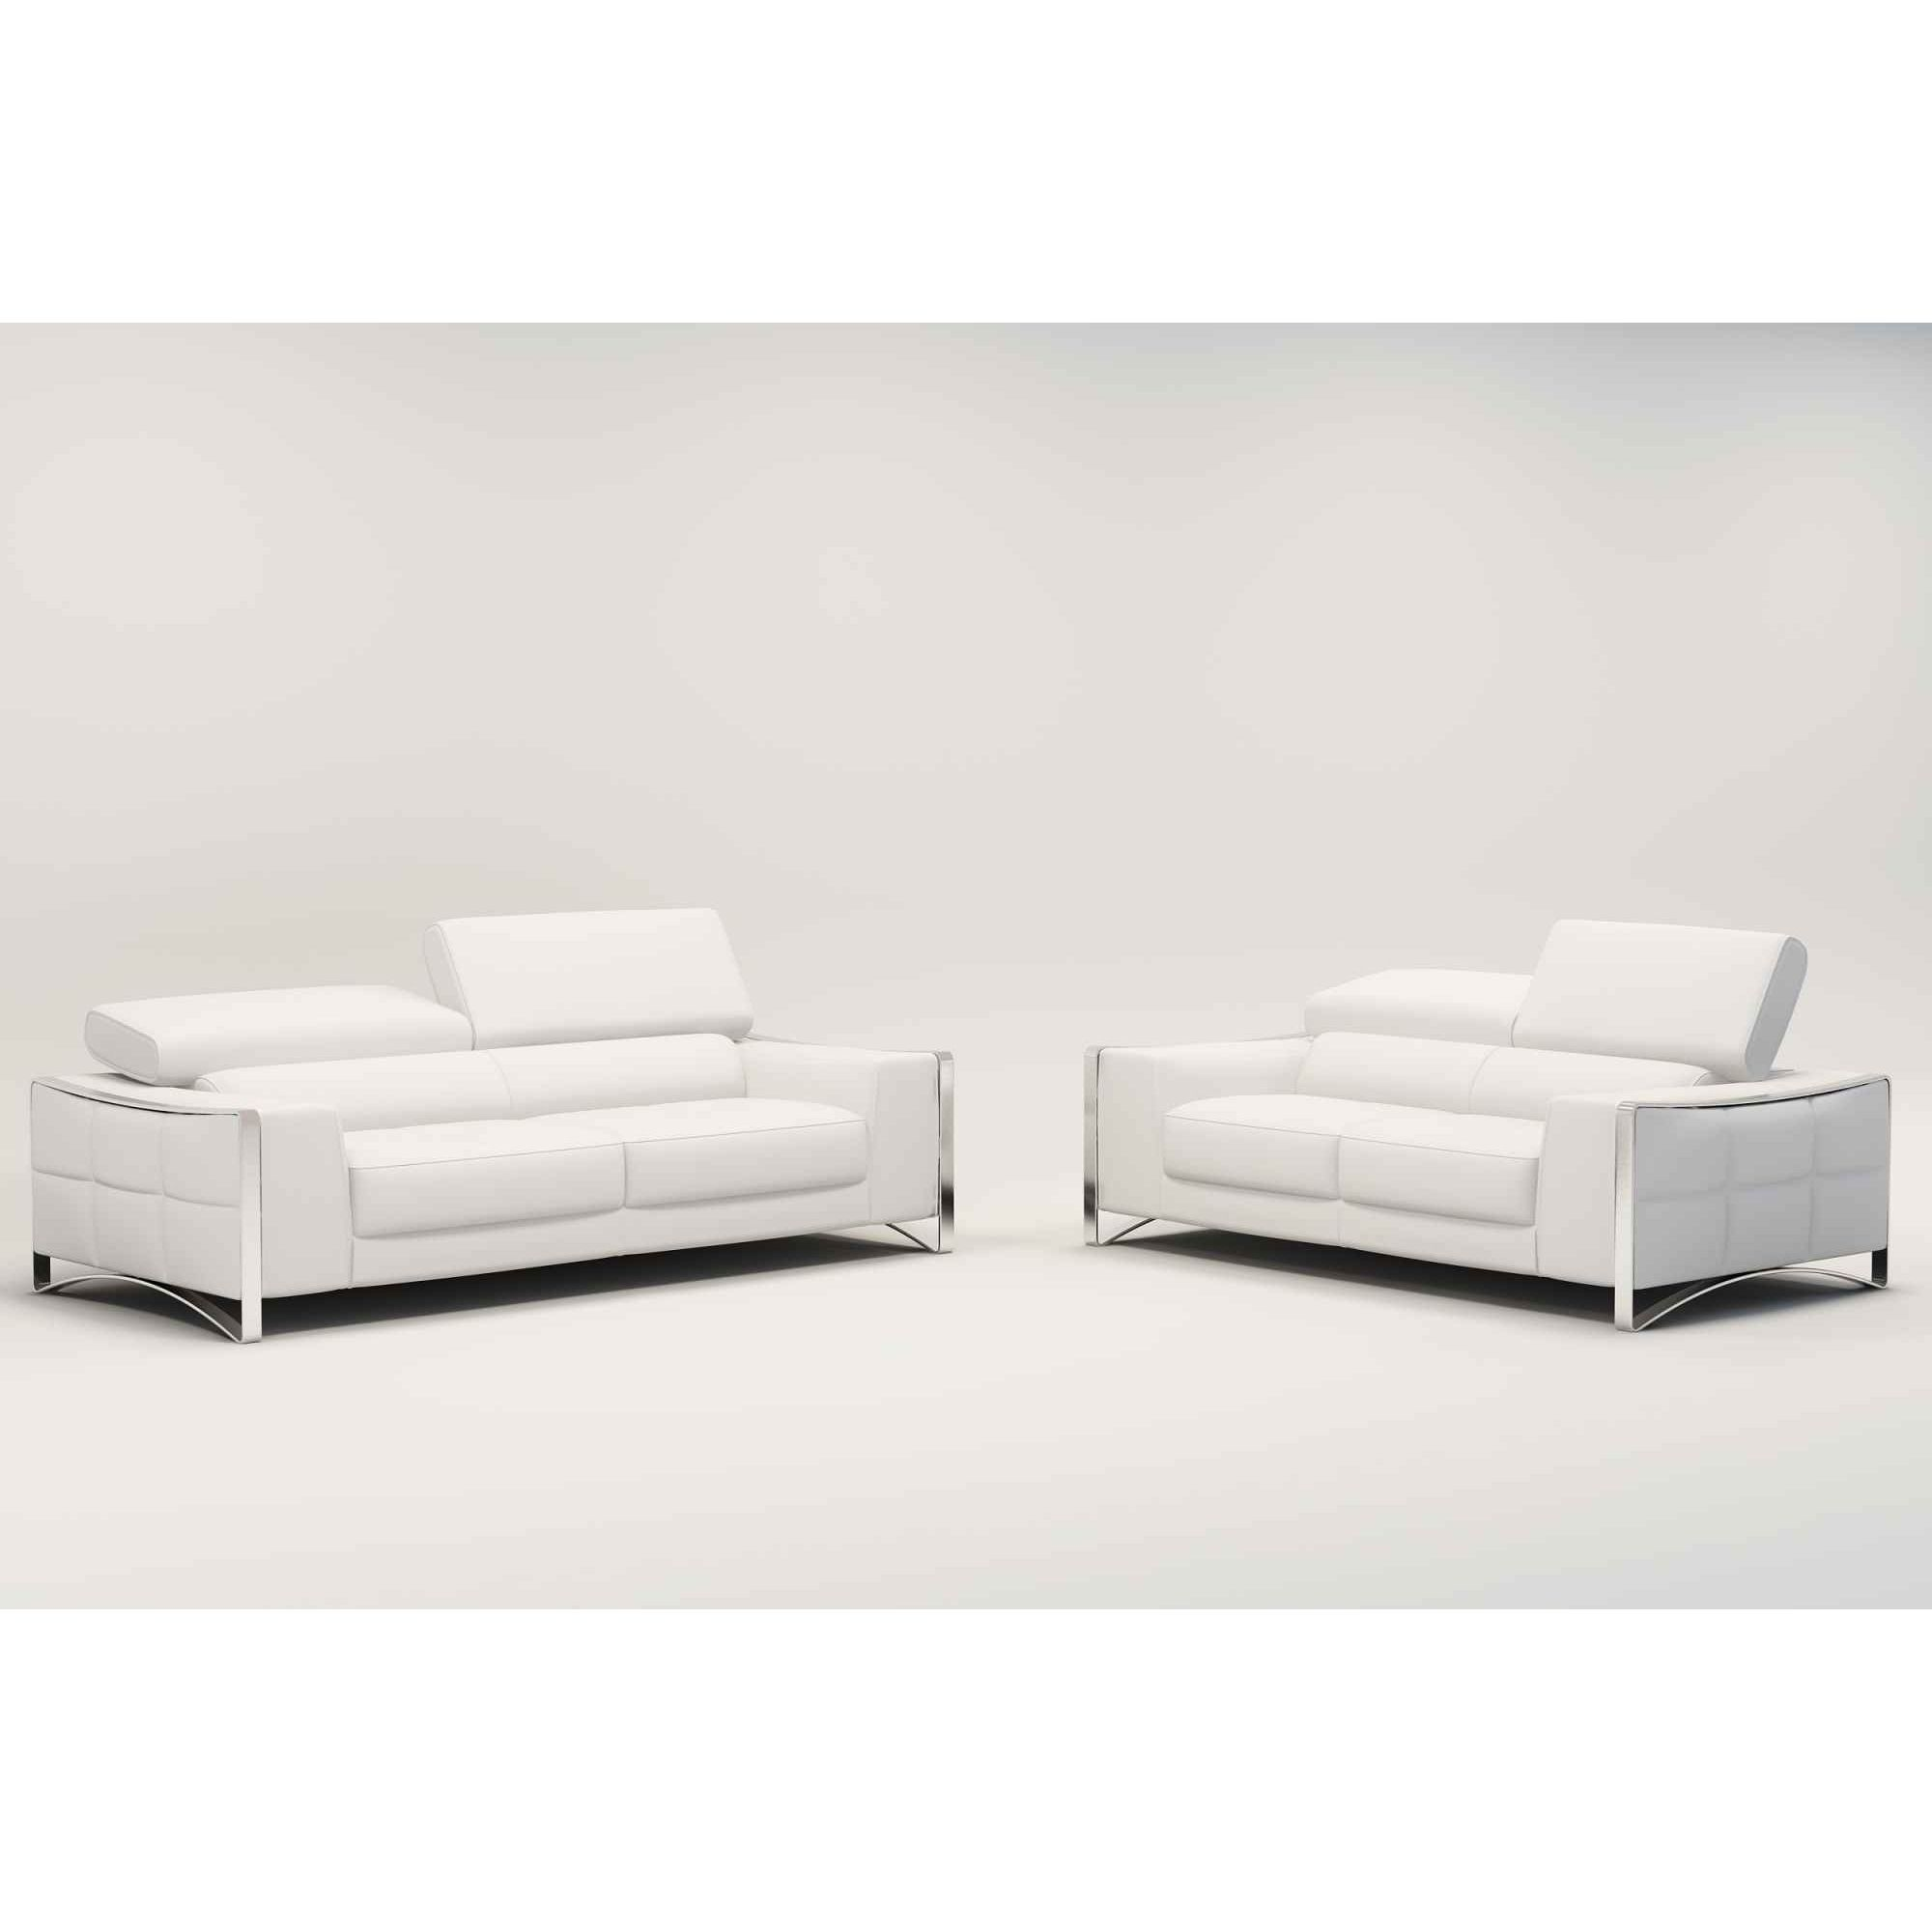 Deco in paris 2 ensemble canape cuir 3 2 places blanc for Canape blanc 2 places